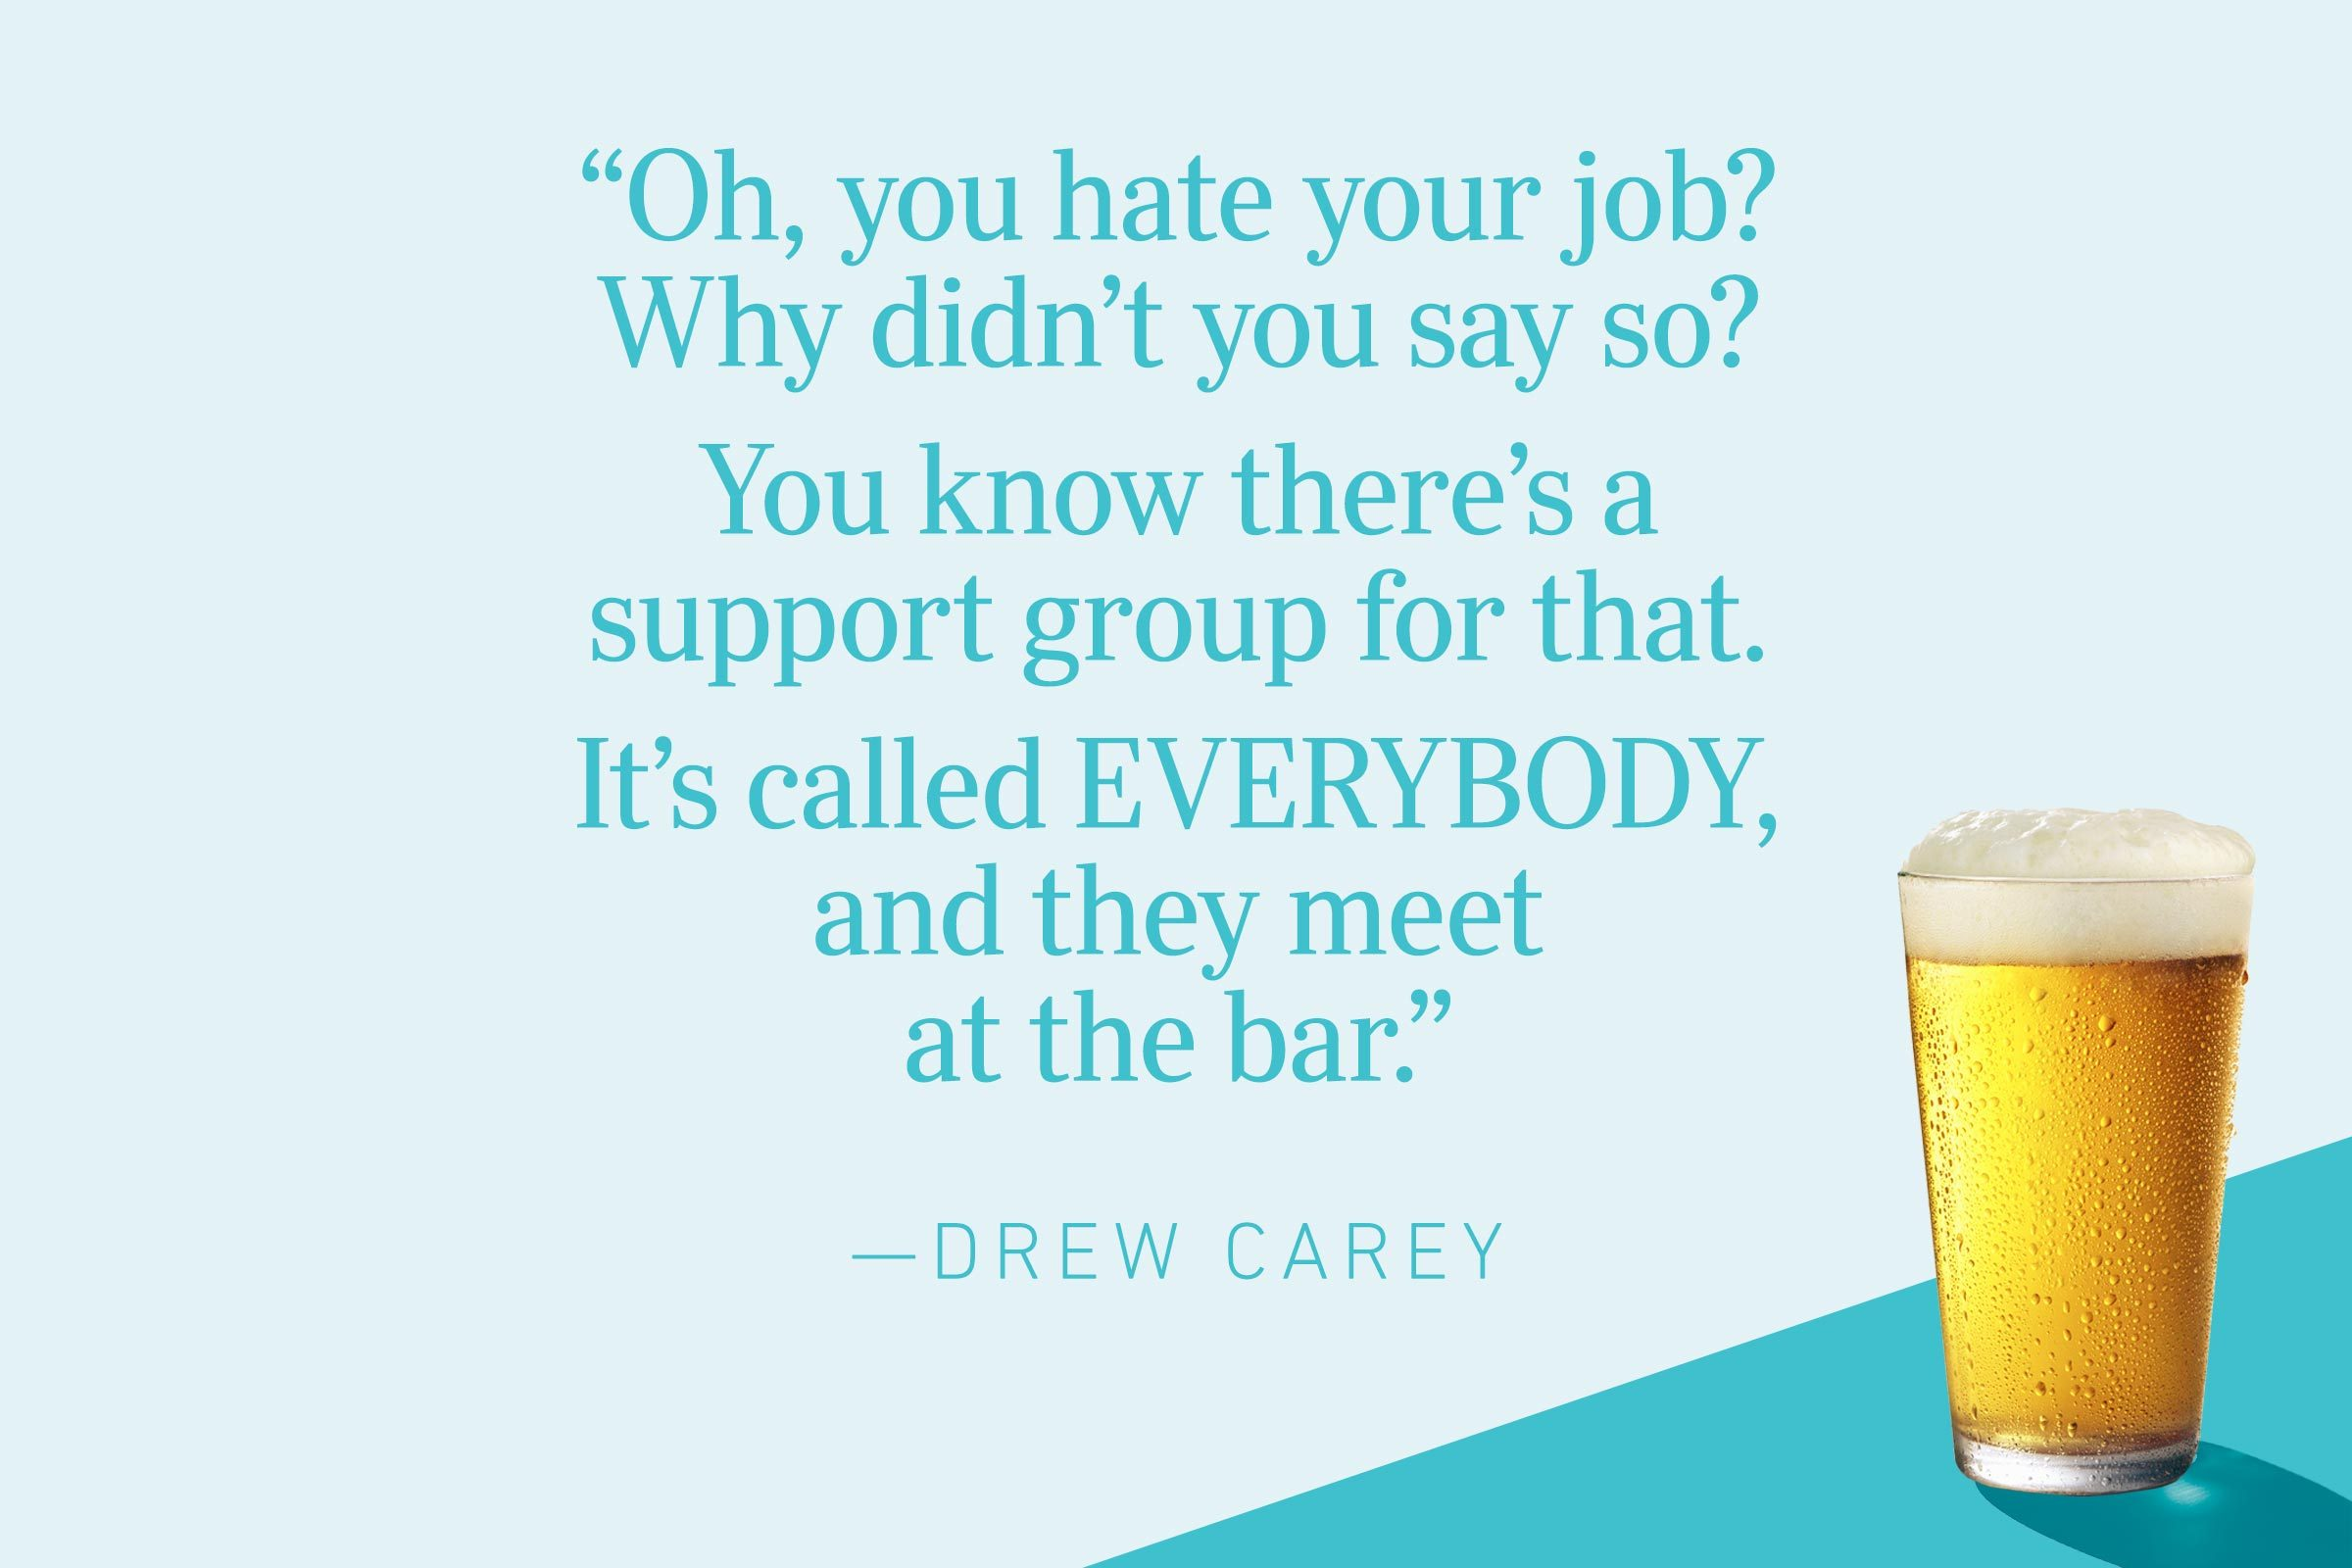 """""""Oh, you hate your job? Why didn't you say so? You know there's a support group for that. It's called EVERYBODY, and they meet at the bar.""""—Drew Carey"""